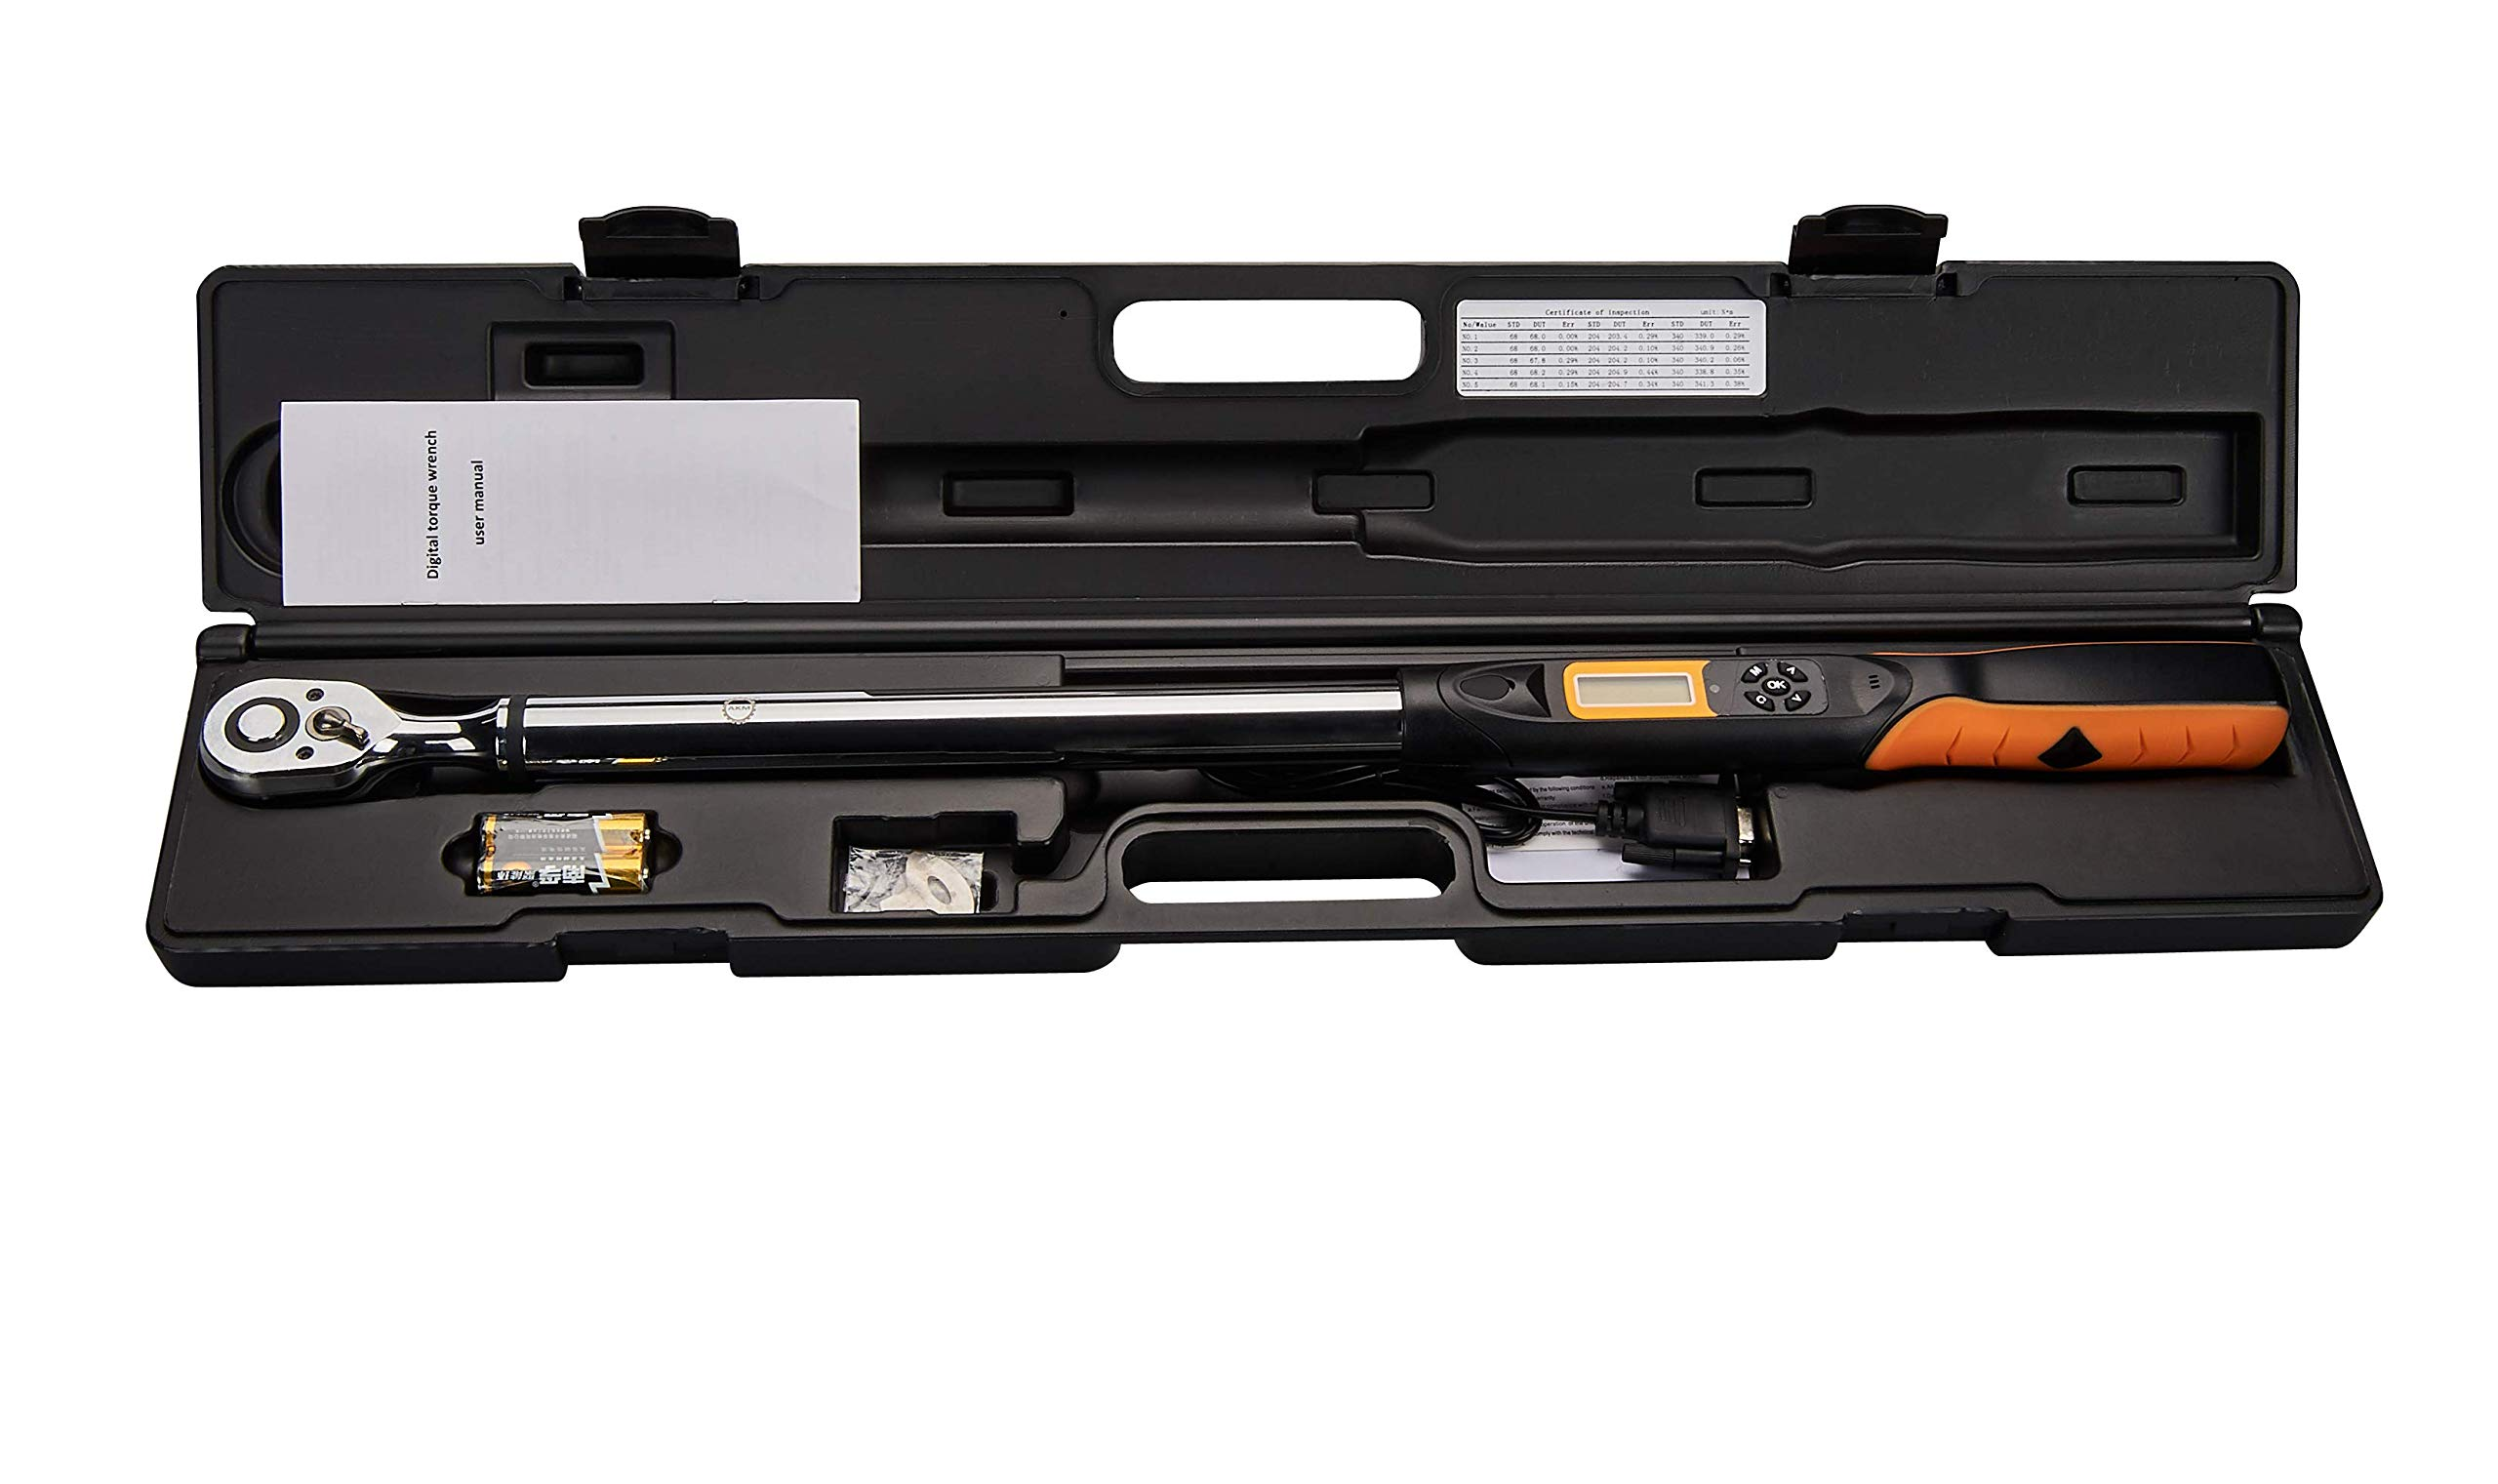 Digital Torque Wrench,AKM 1/2 Inch Drive 72-tooth 12.5-250Ft.Lbs/17-340N.m Accurate To 2% Clockwise & 2.5% Counterclockwise (2019 New Gen) by AKM (Image #1)